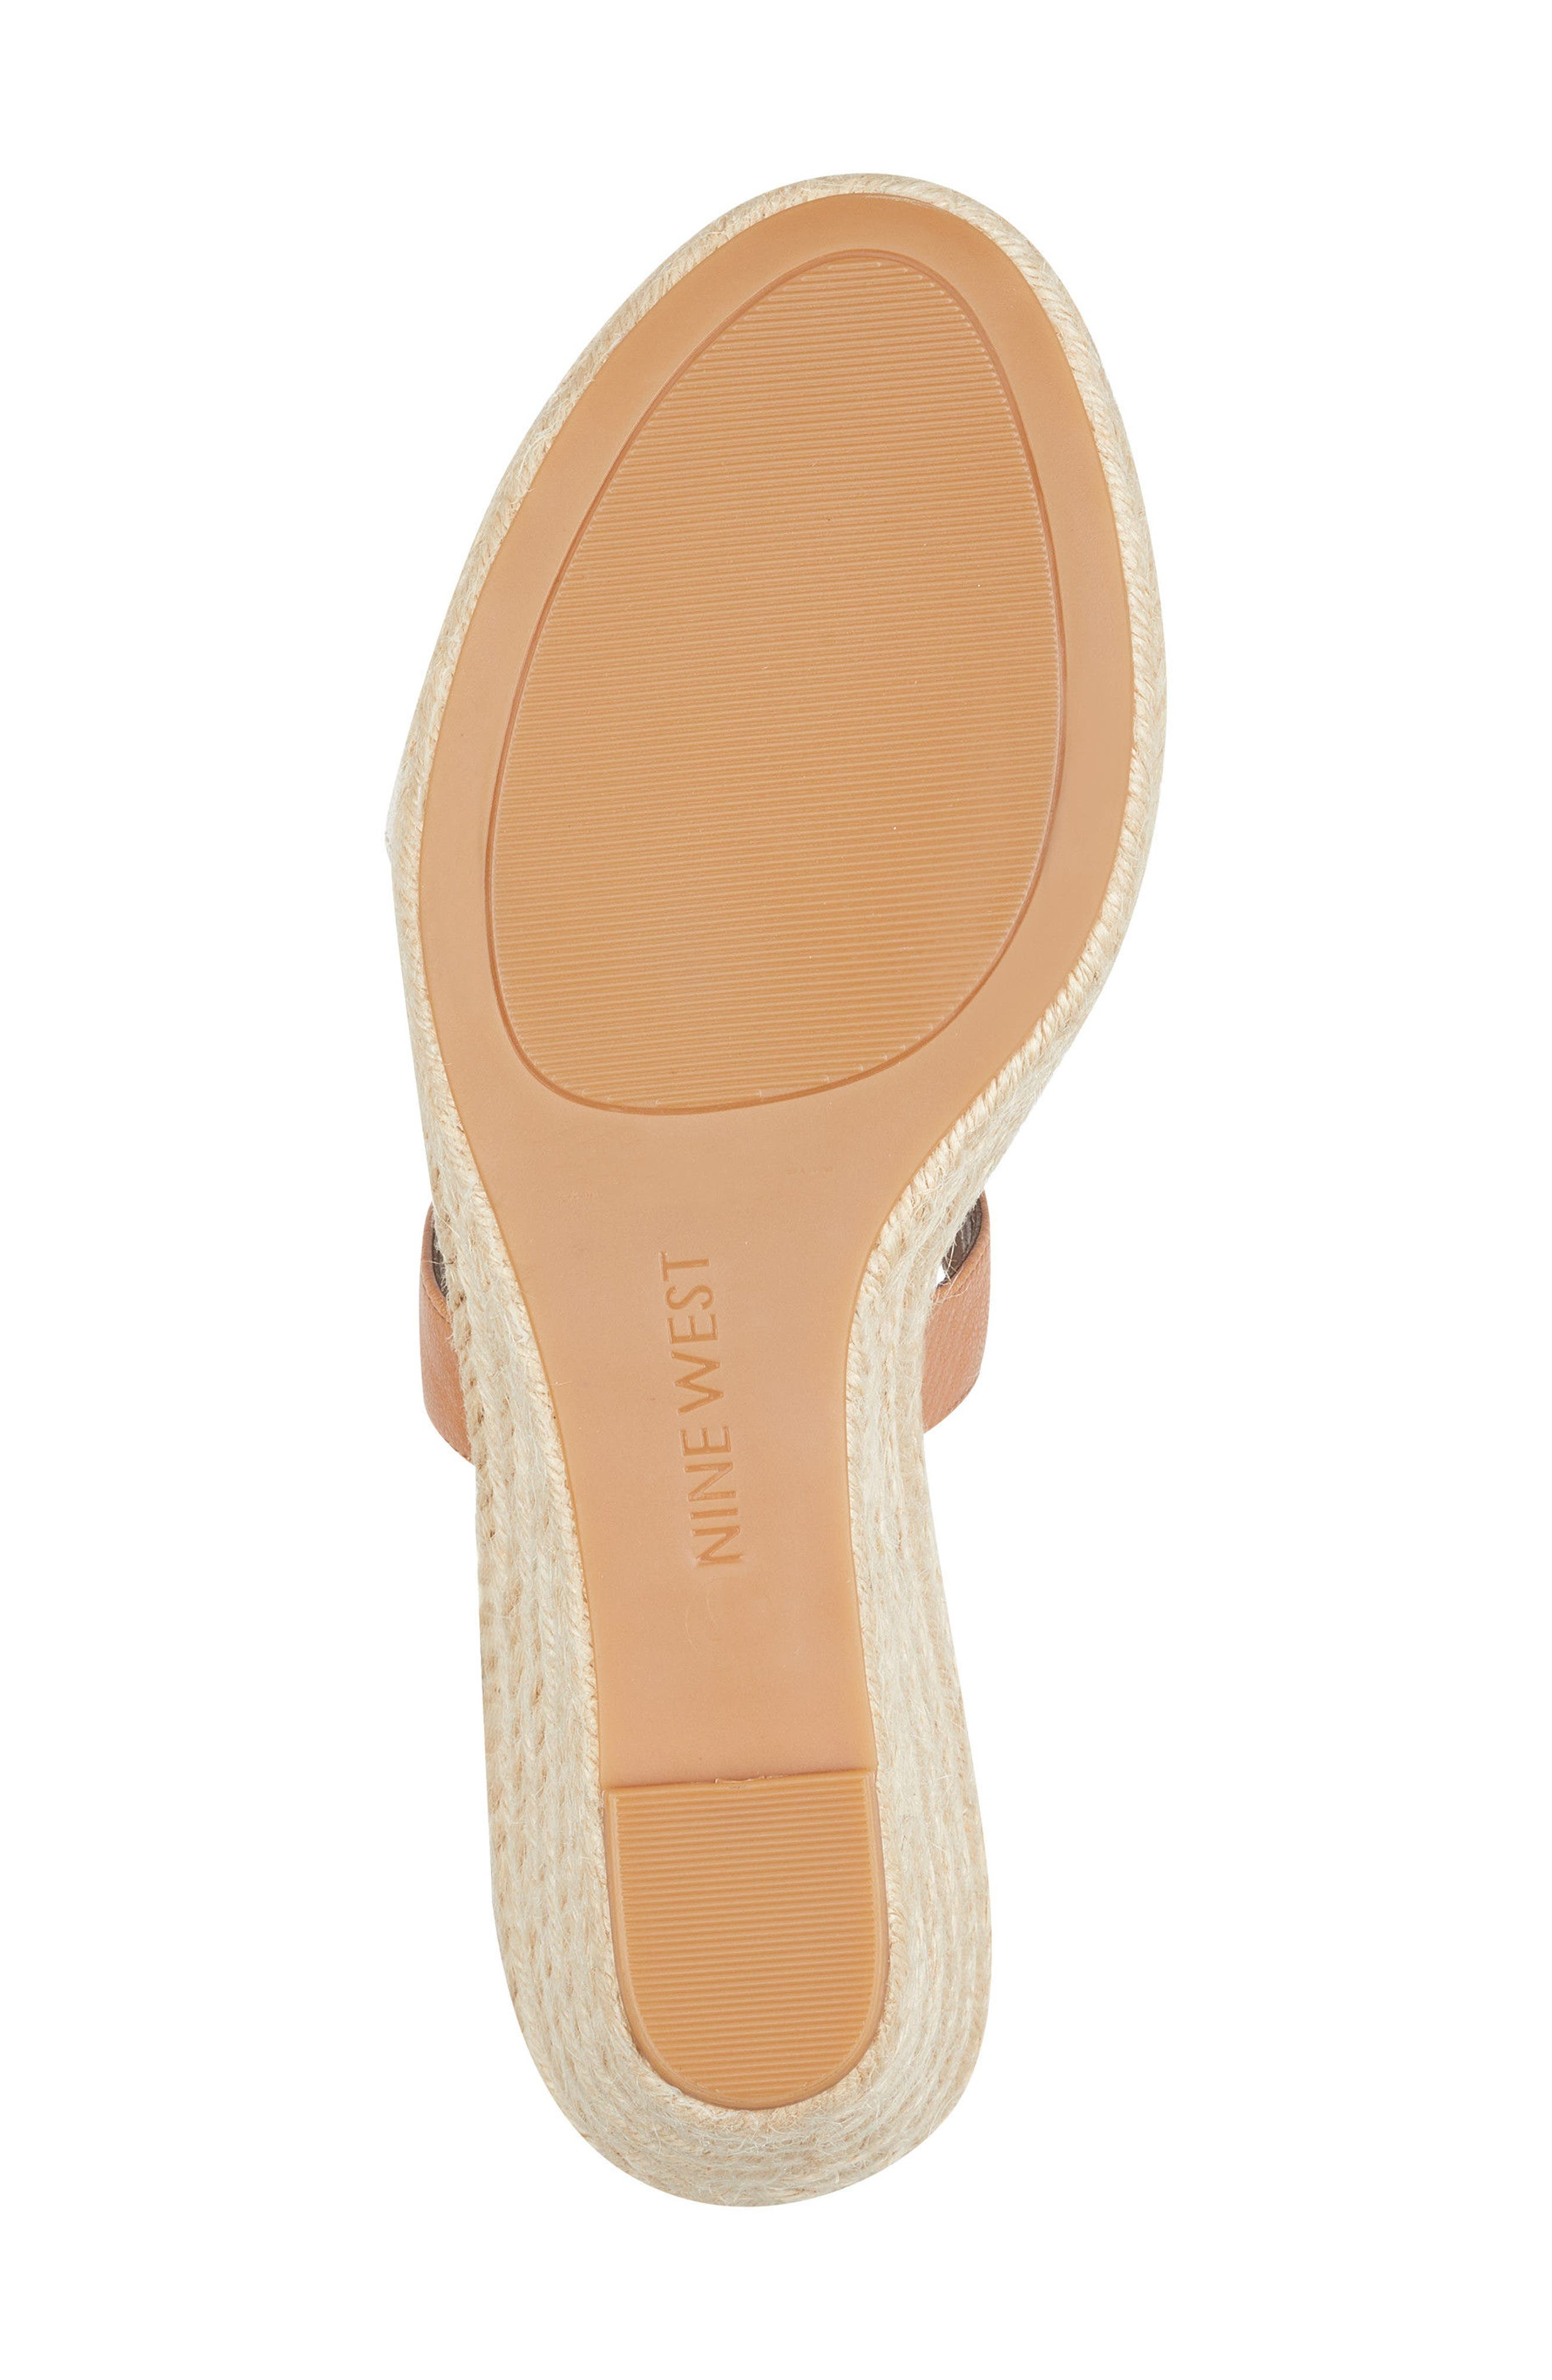 Jorjapeach Espadrille Wedge Sandal,                             Alternate thumbnail 6, color,                             White Leather